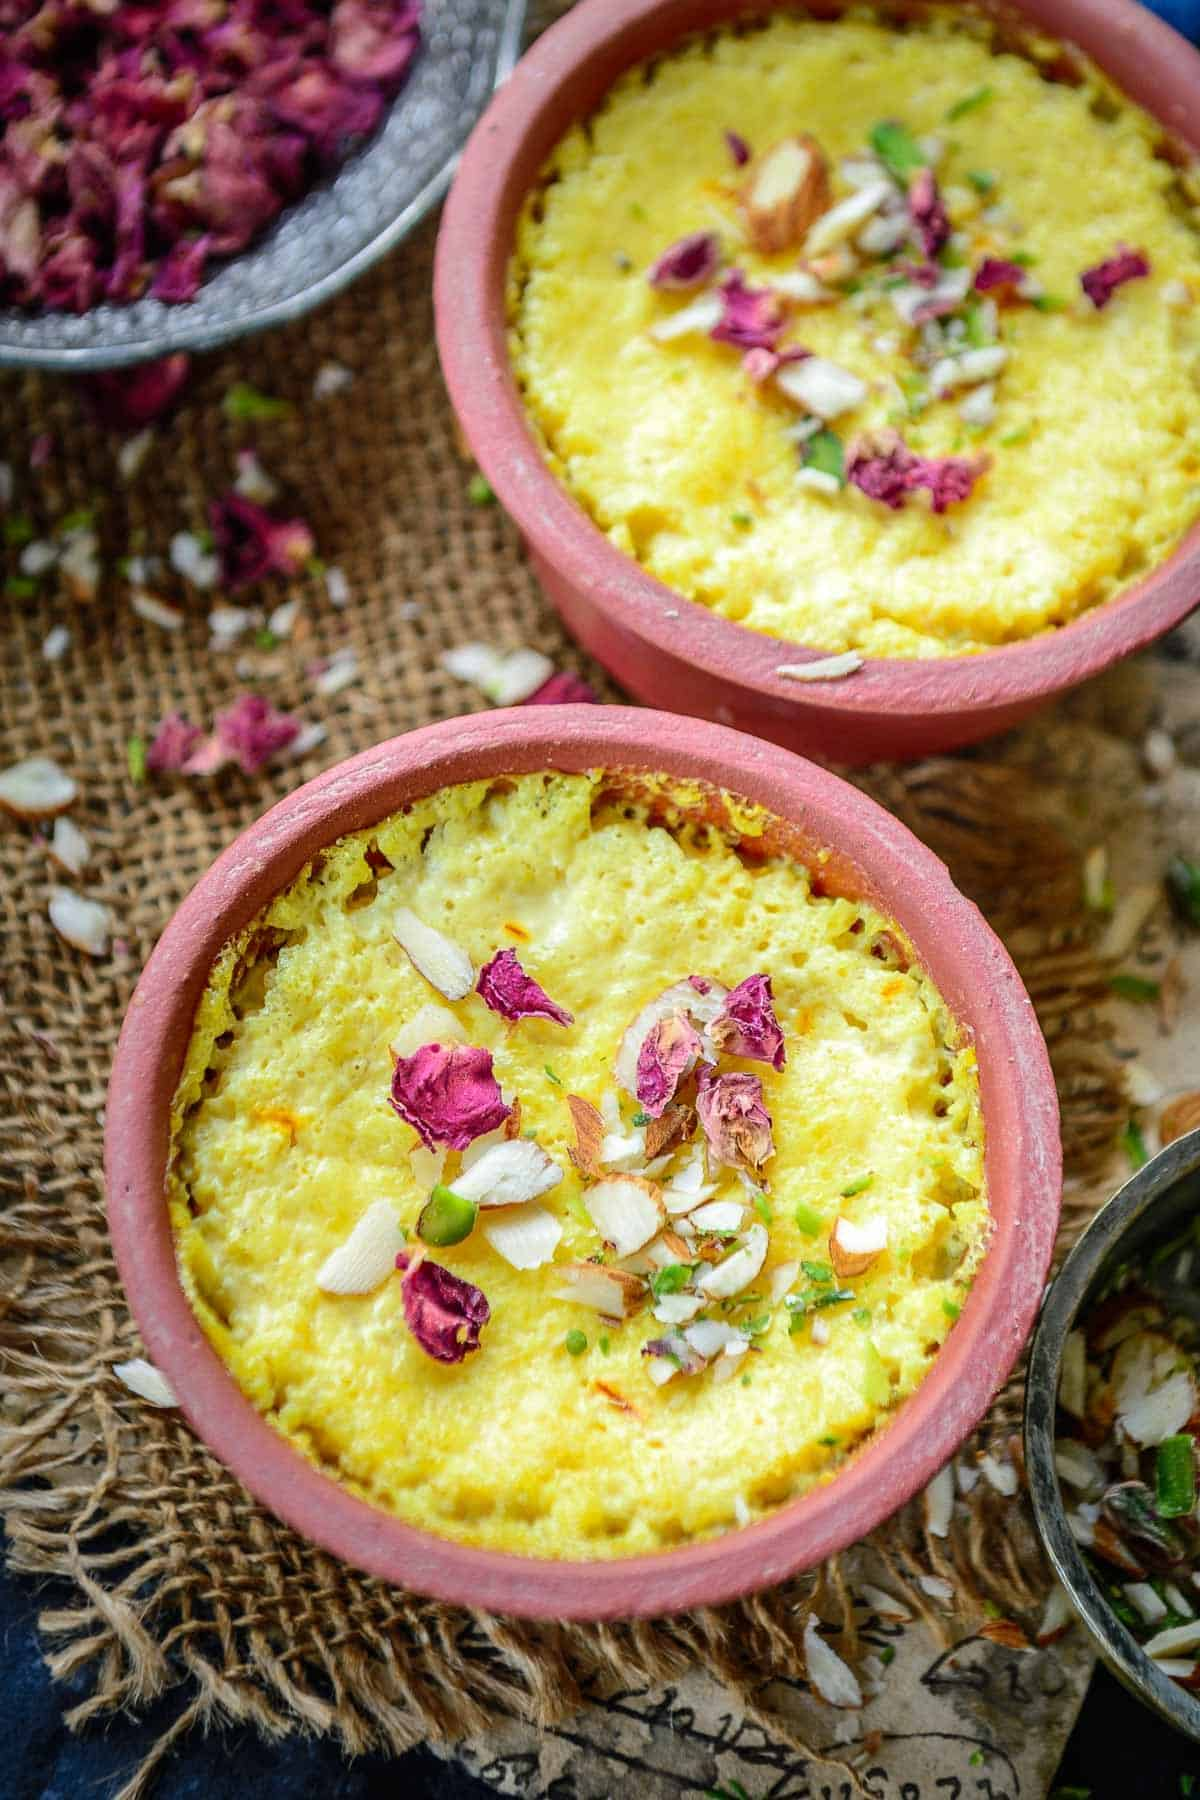 Phirni served in clay bowls.